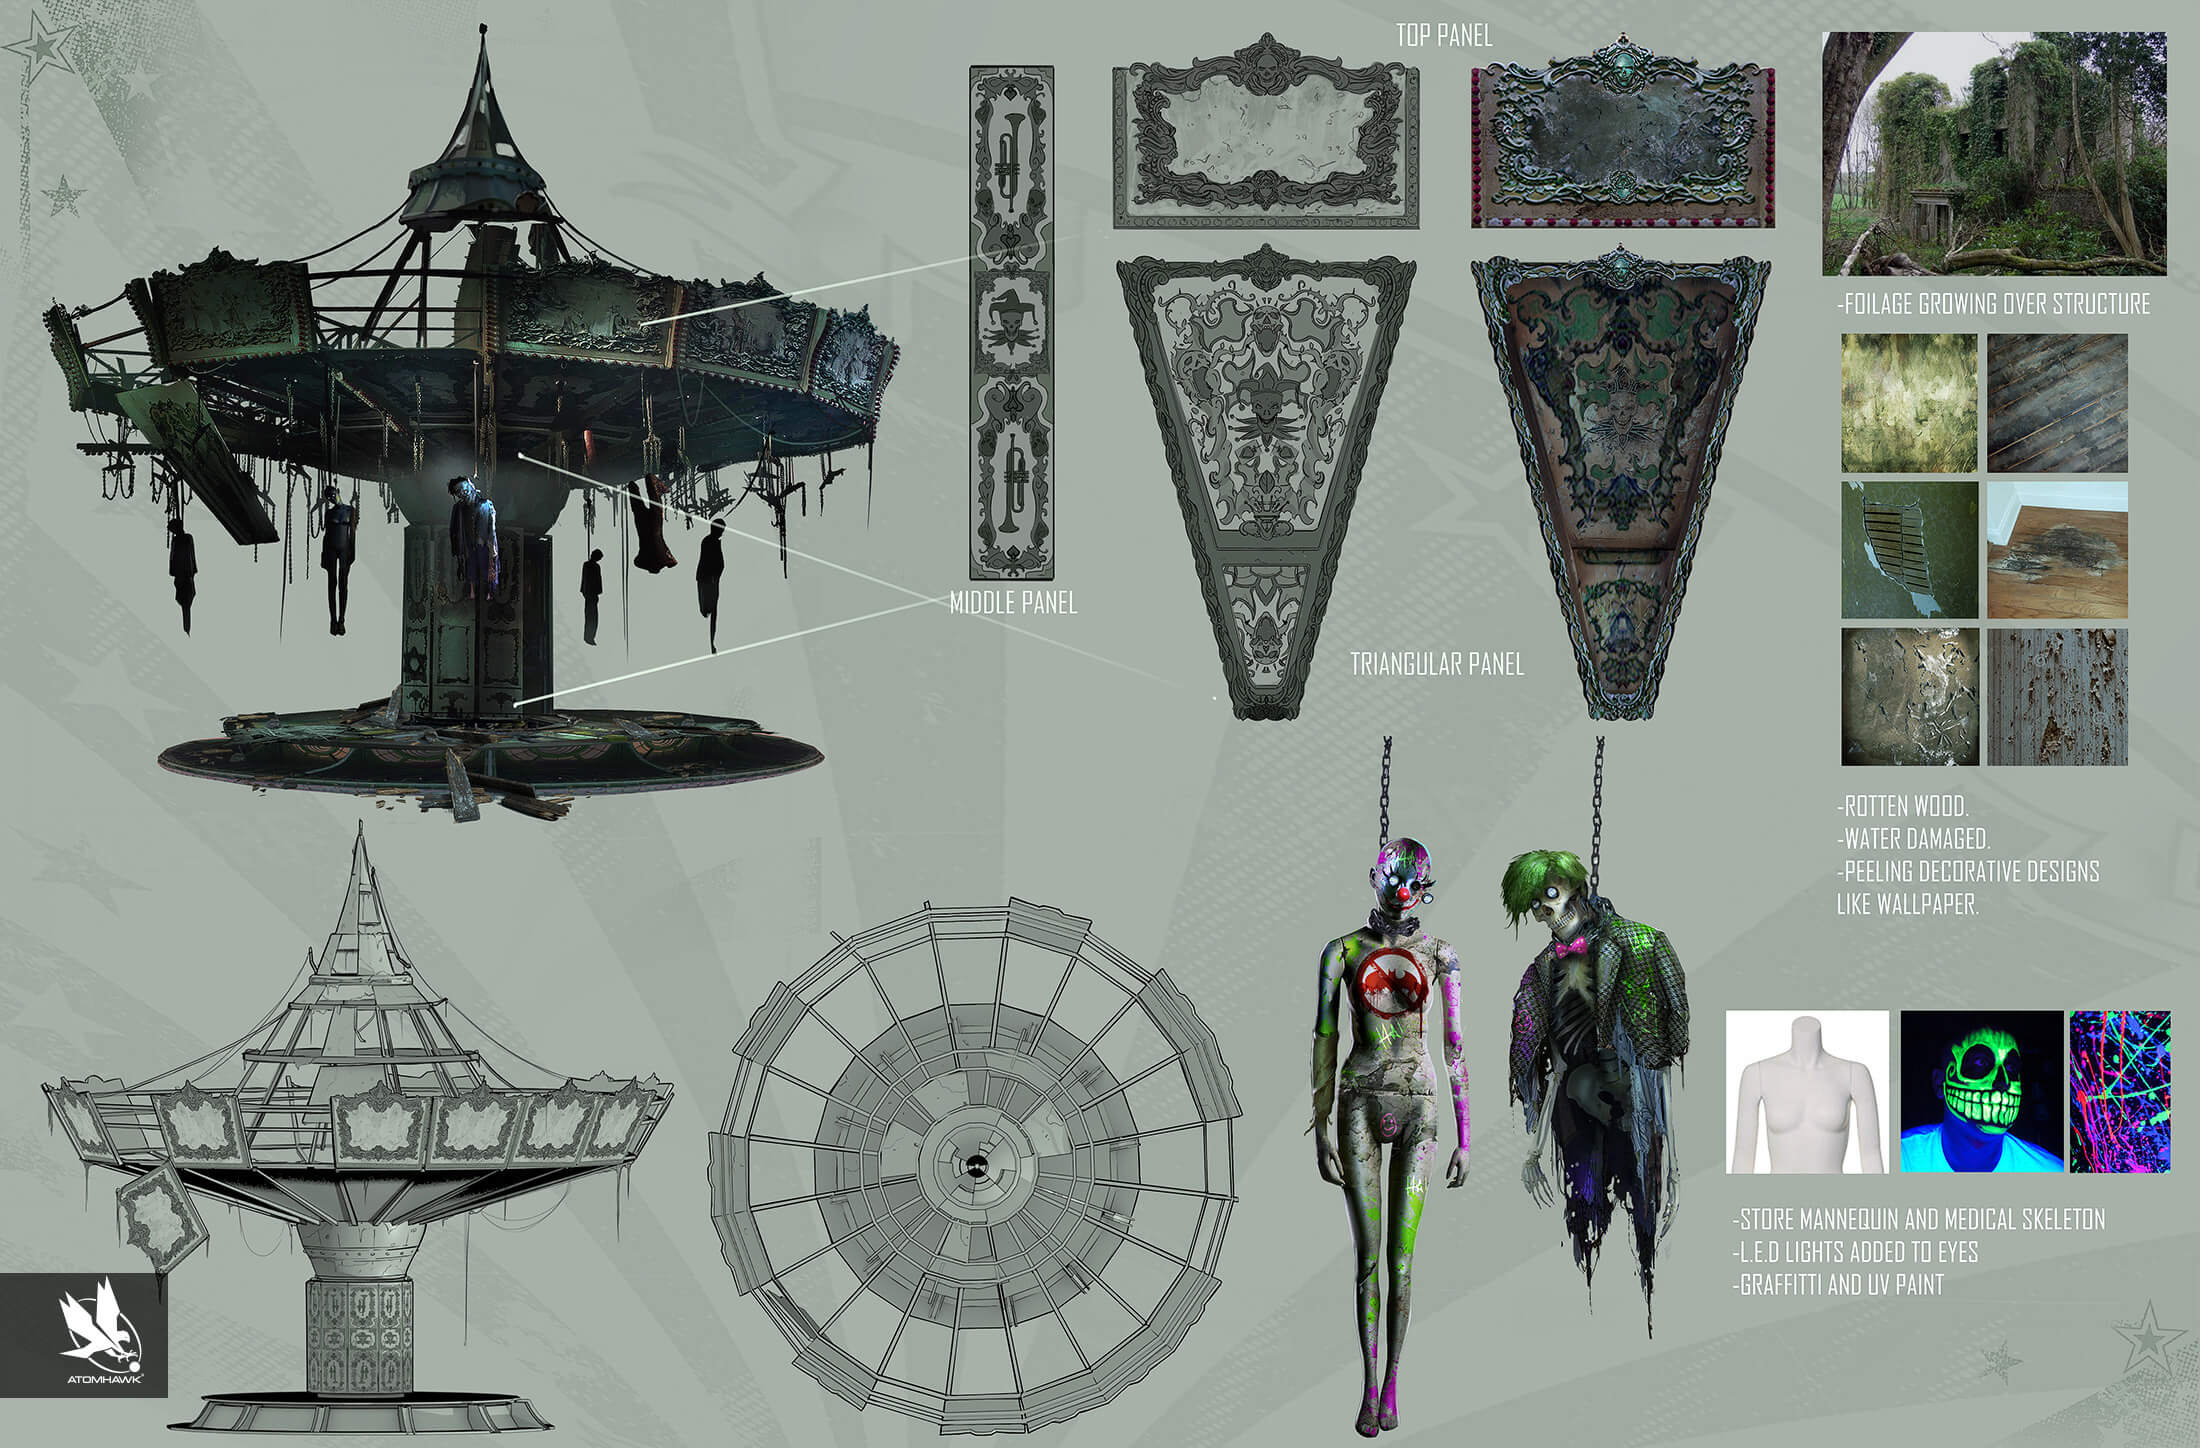 Atomhawk Warner Bros - Nether Realm - Injustice 2 - Concept Art and Prop Design - Jokers Playground Carousel Breakout Services.jpg